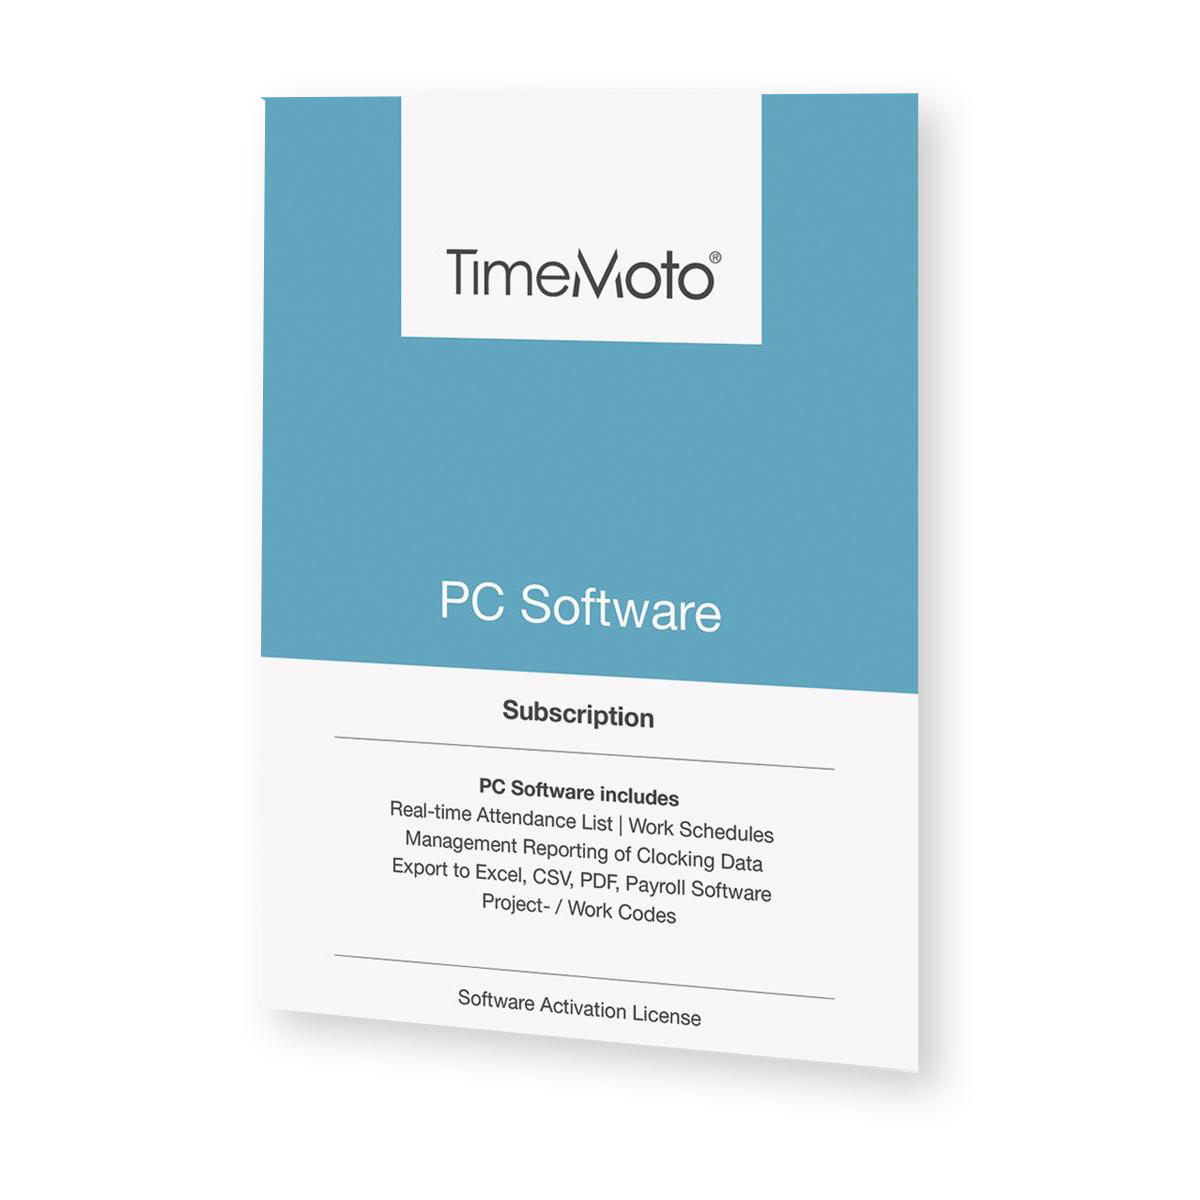 Human resources software TimeMoto by Safescan TM PC Software for Time & Attendance System Unlimited Users Ref 139-0601